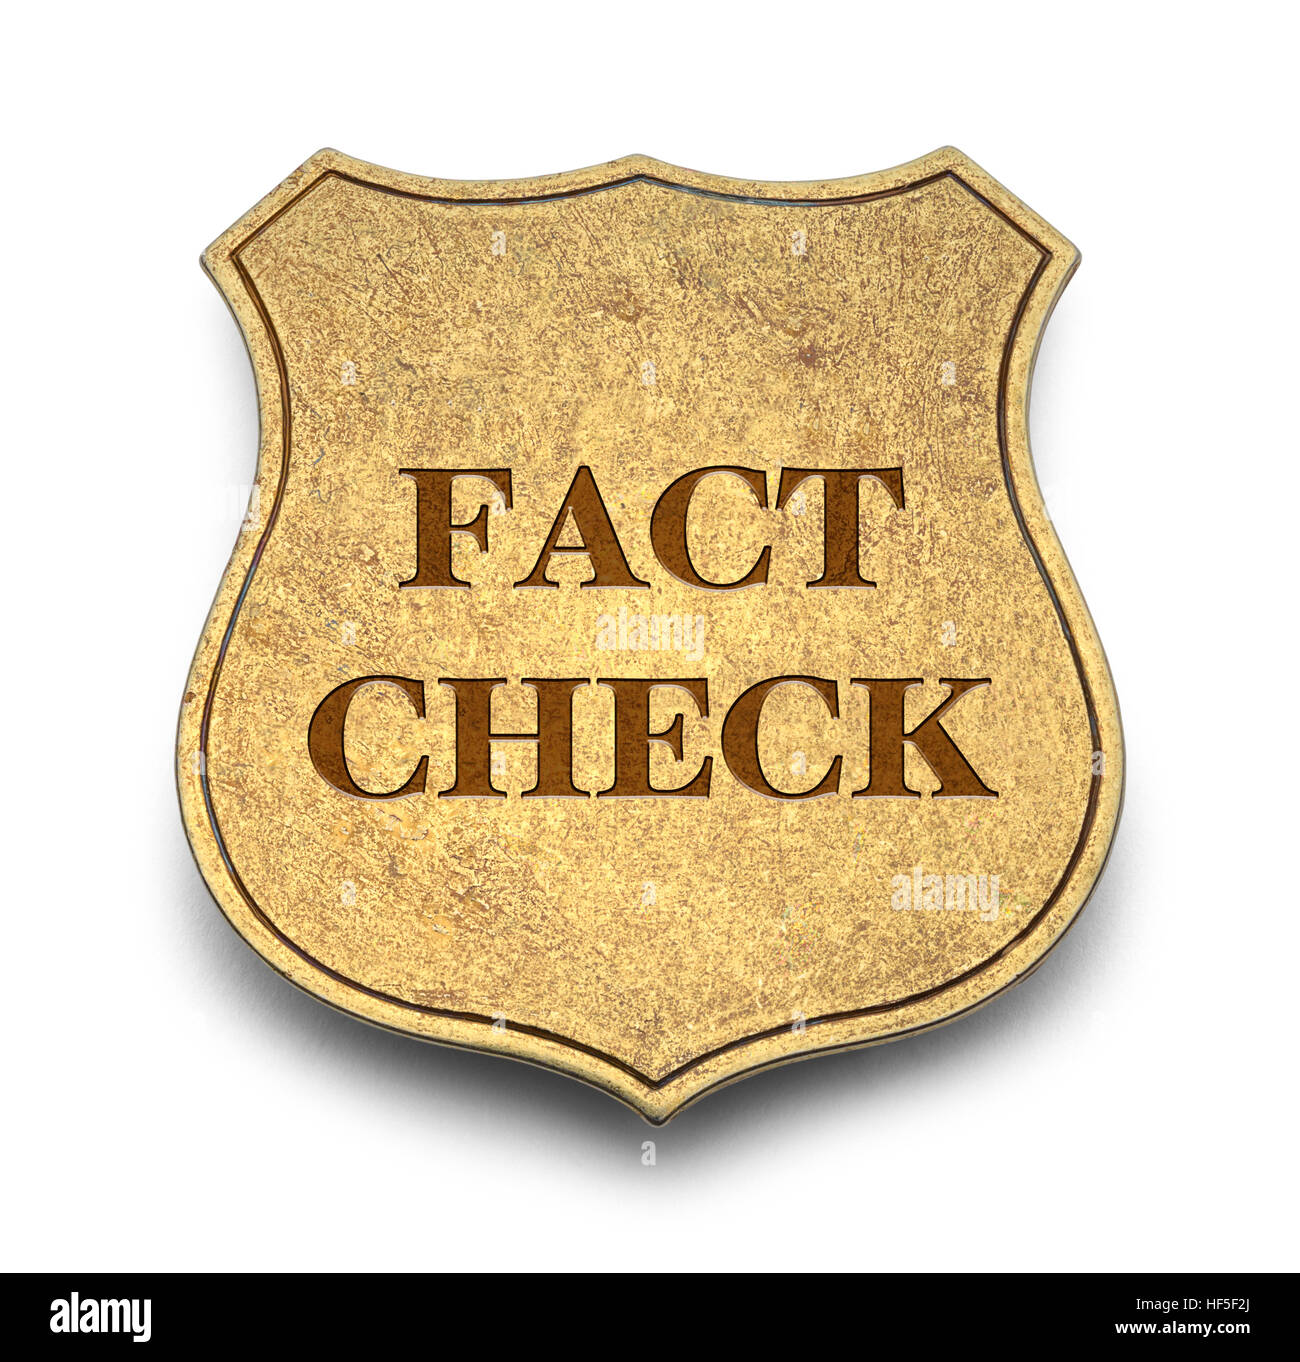 Fact Check Badge Isolated on White Background. - Stock Image